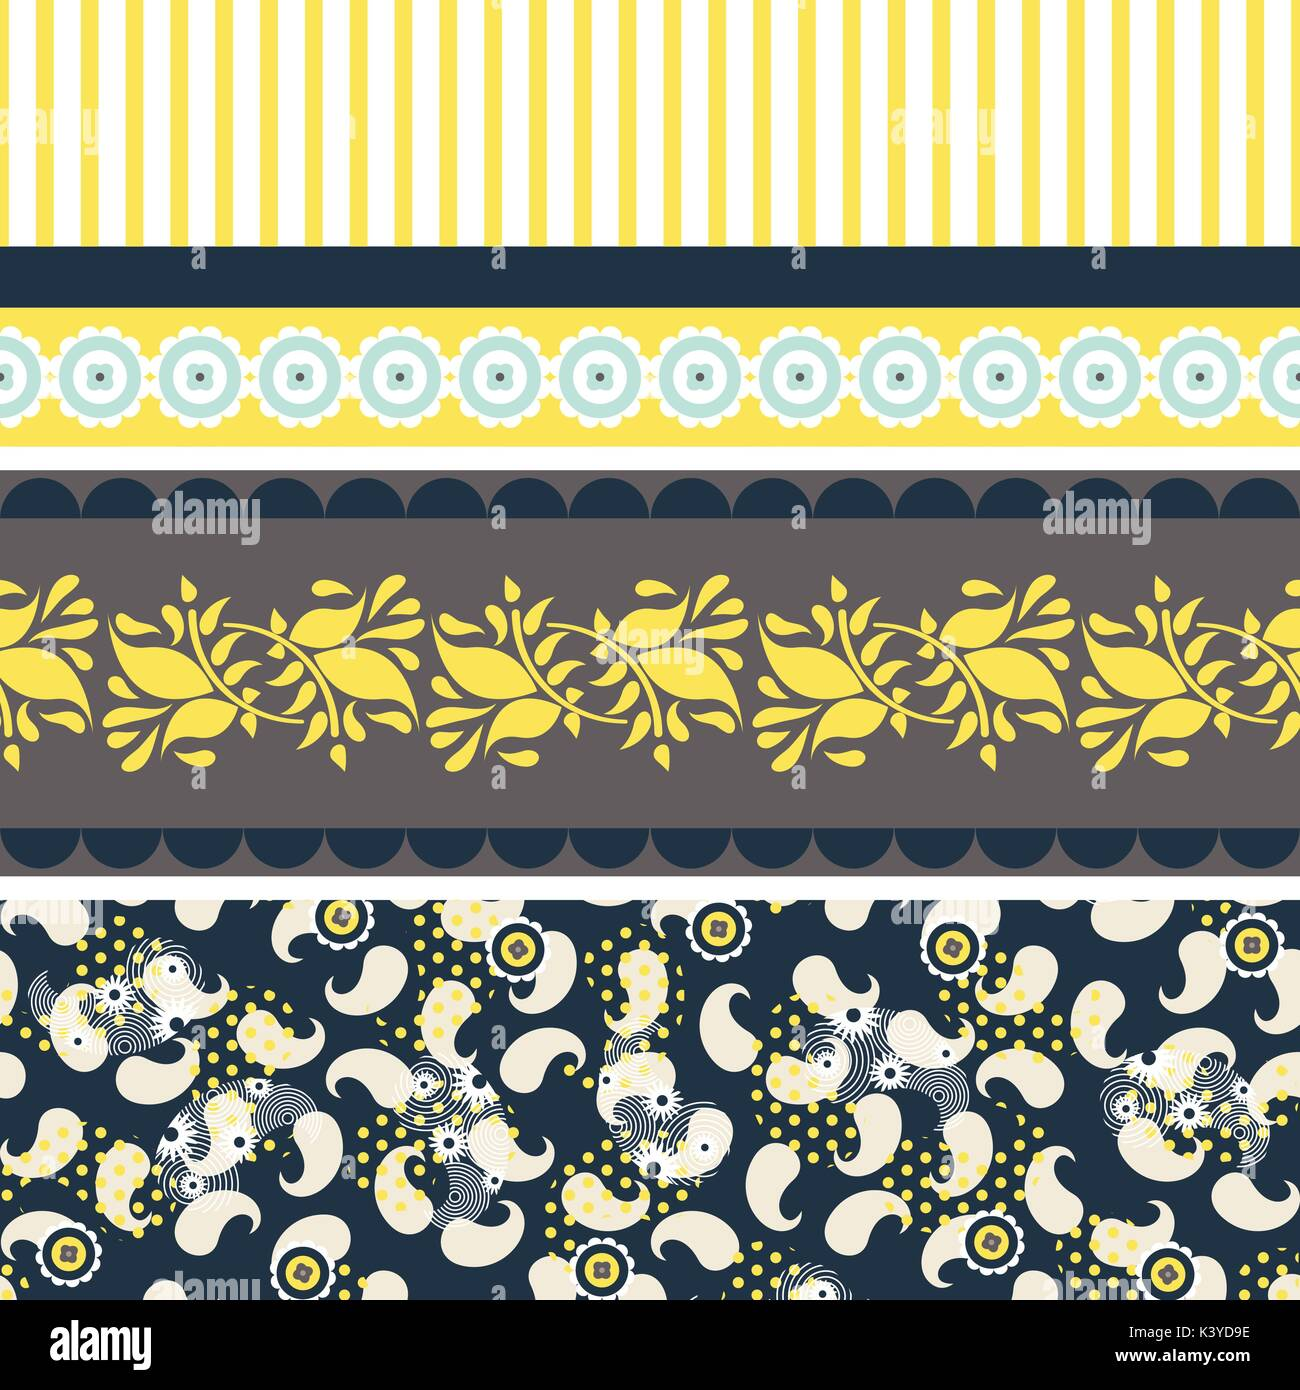 Folk floral blue and yellow seamless vector pattern. - Stock Vector